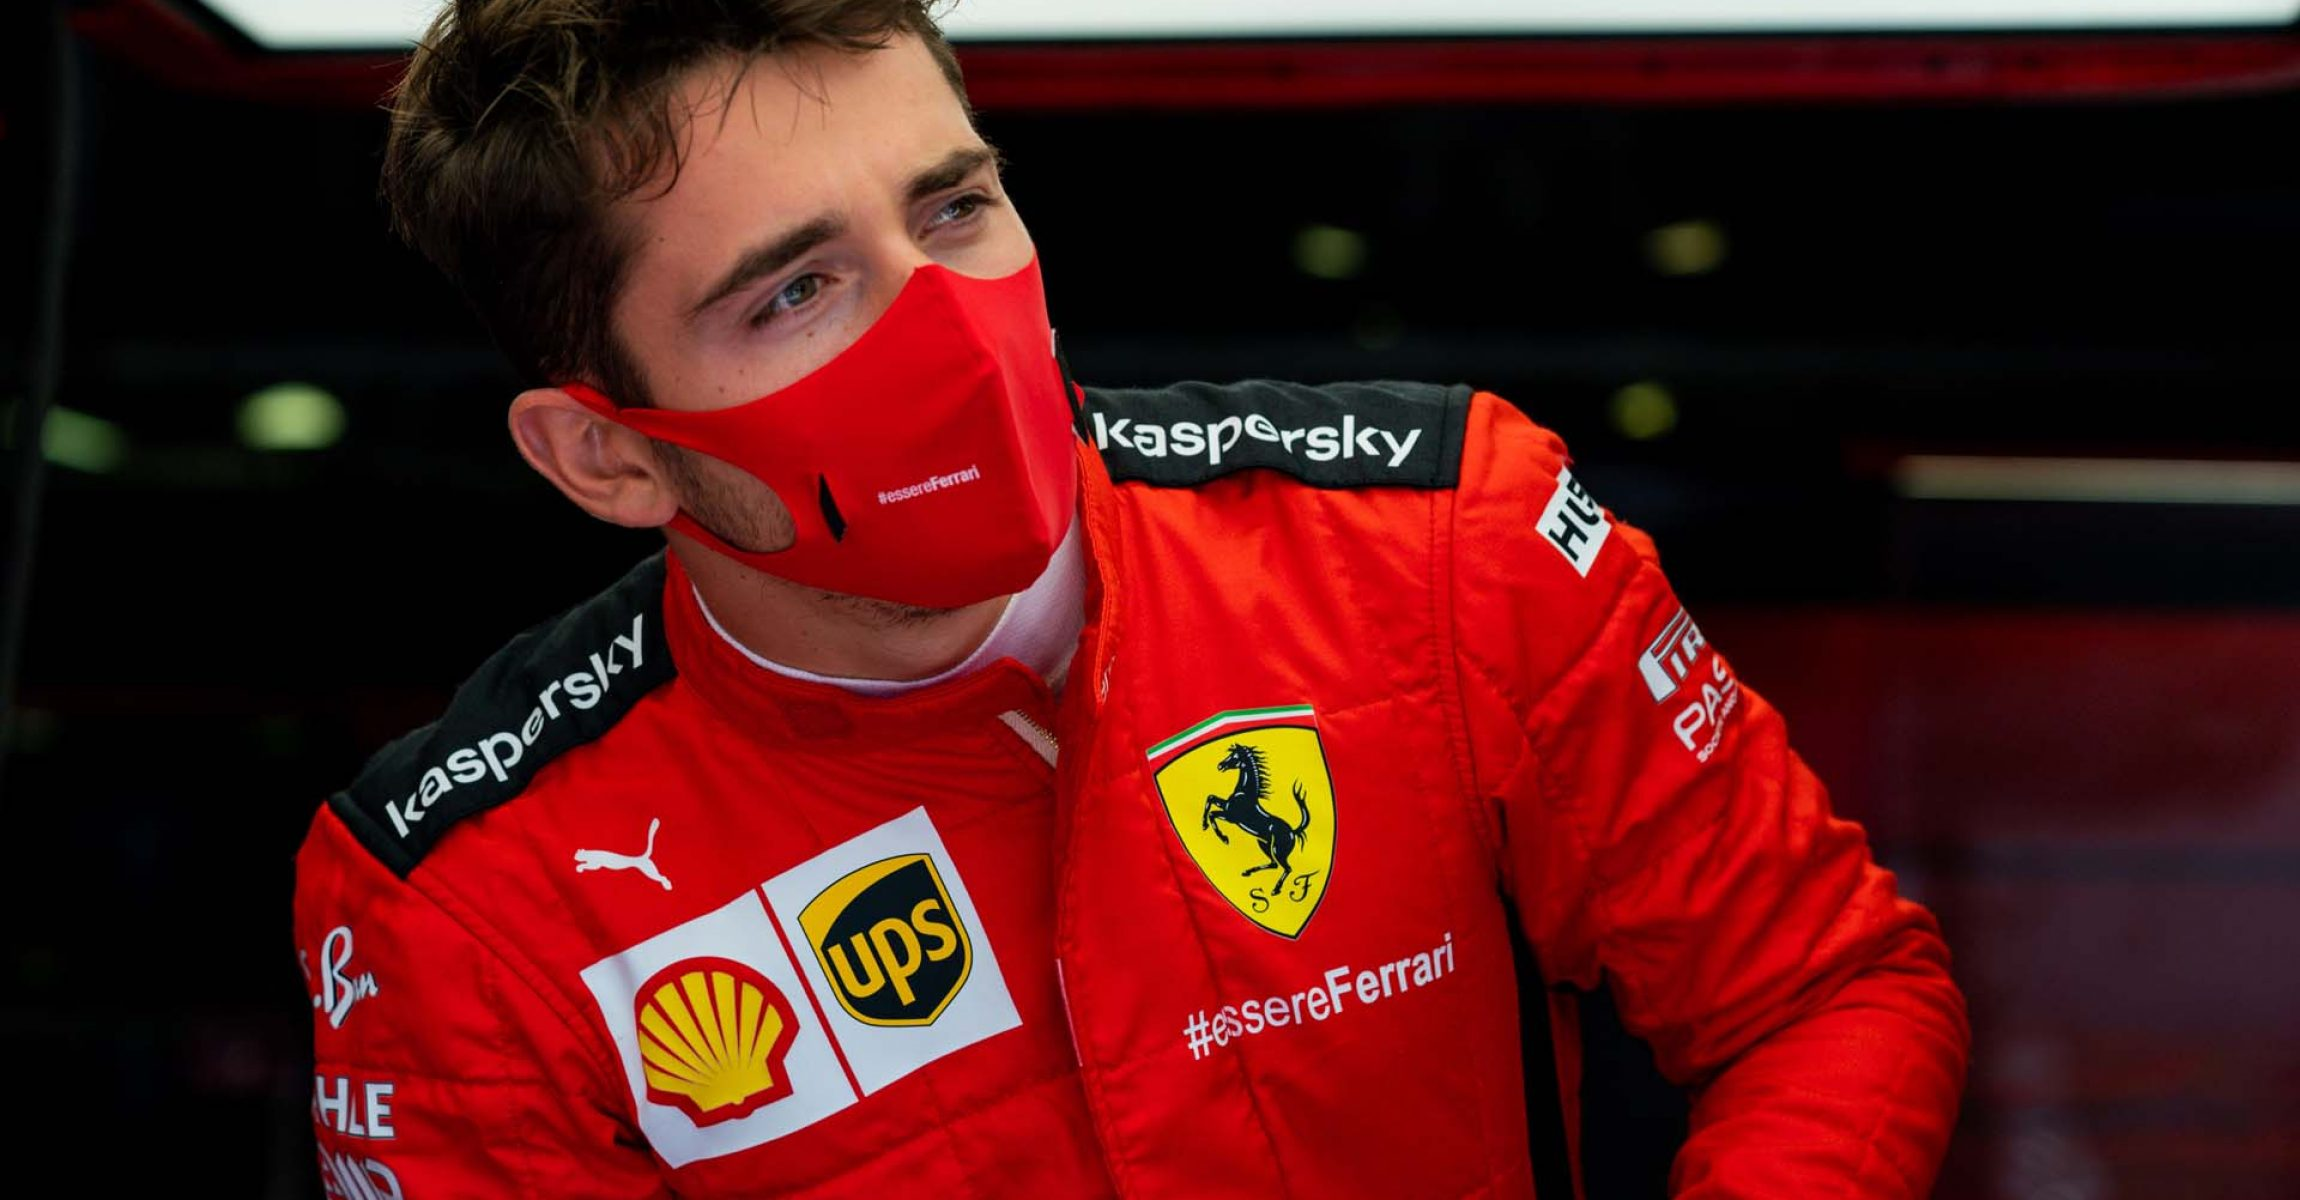 GP ITALIA F1/2020 -  GIOVEDI 03/09/2020        credit: @Scuderia Ferrari Press Office Charles Leclerc